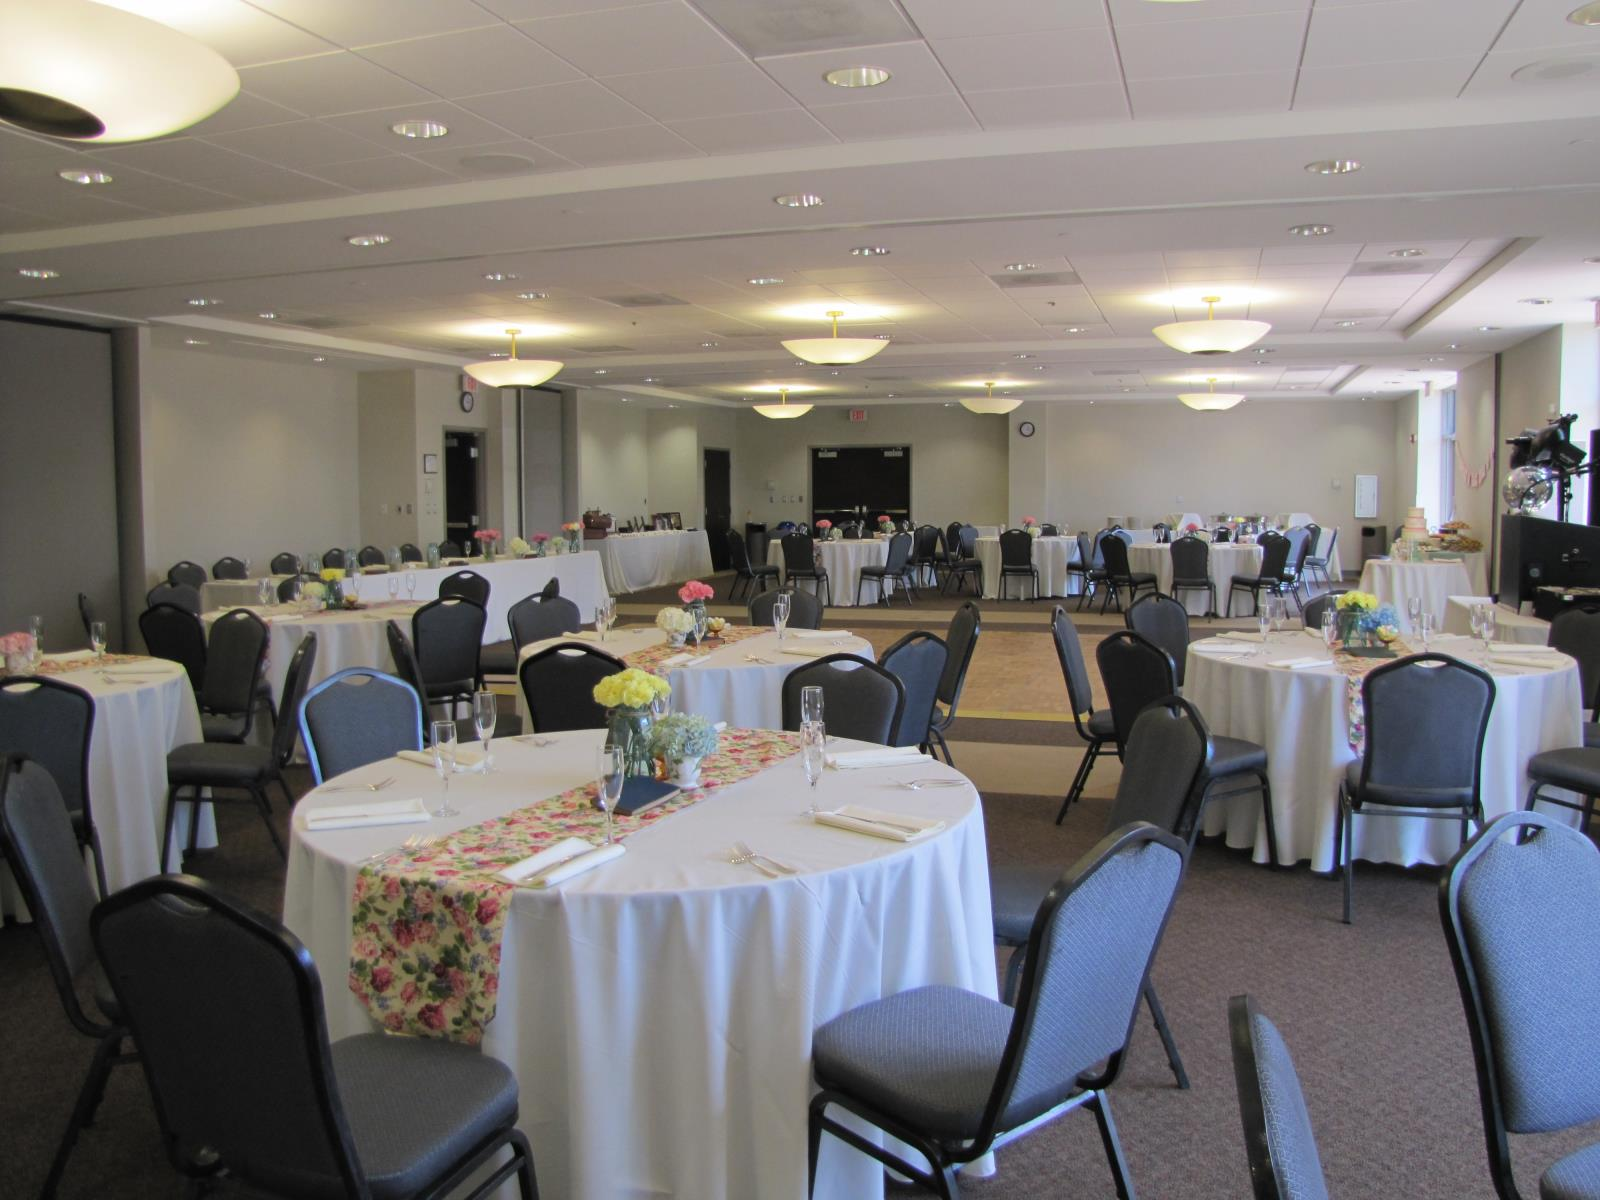 Banquet Hall Overview